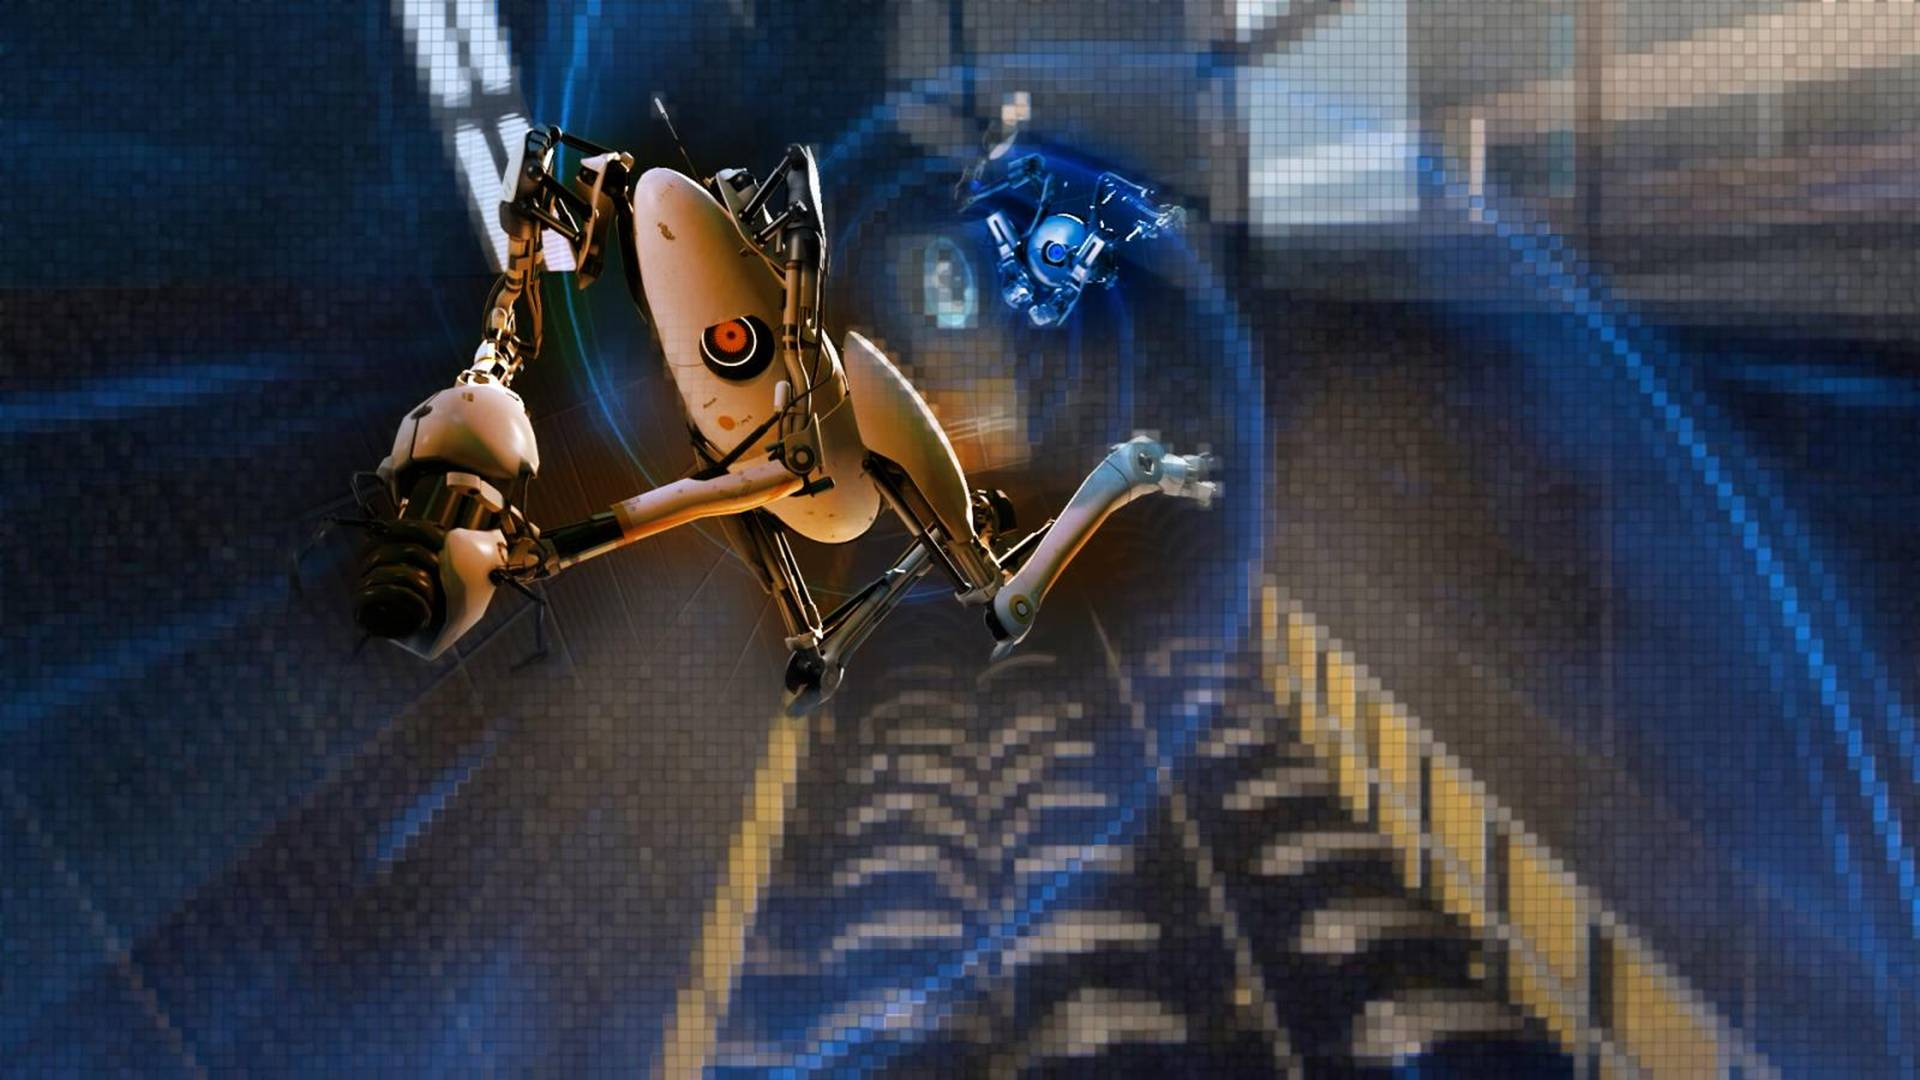 PORTAL 2 HD 1080P WALLPAPER PS3 « GamingBolt: Video Game News